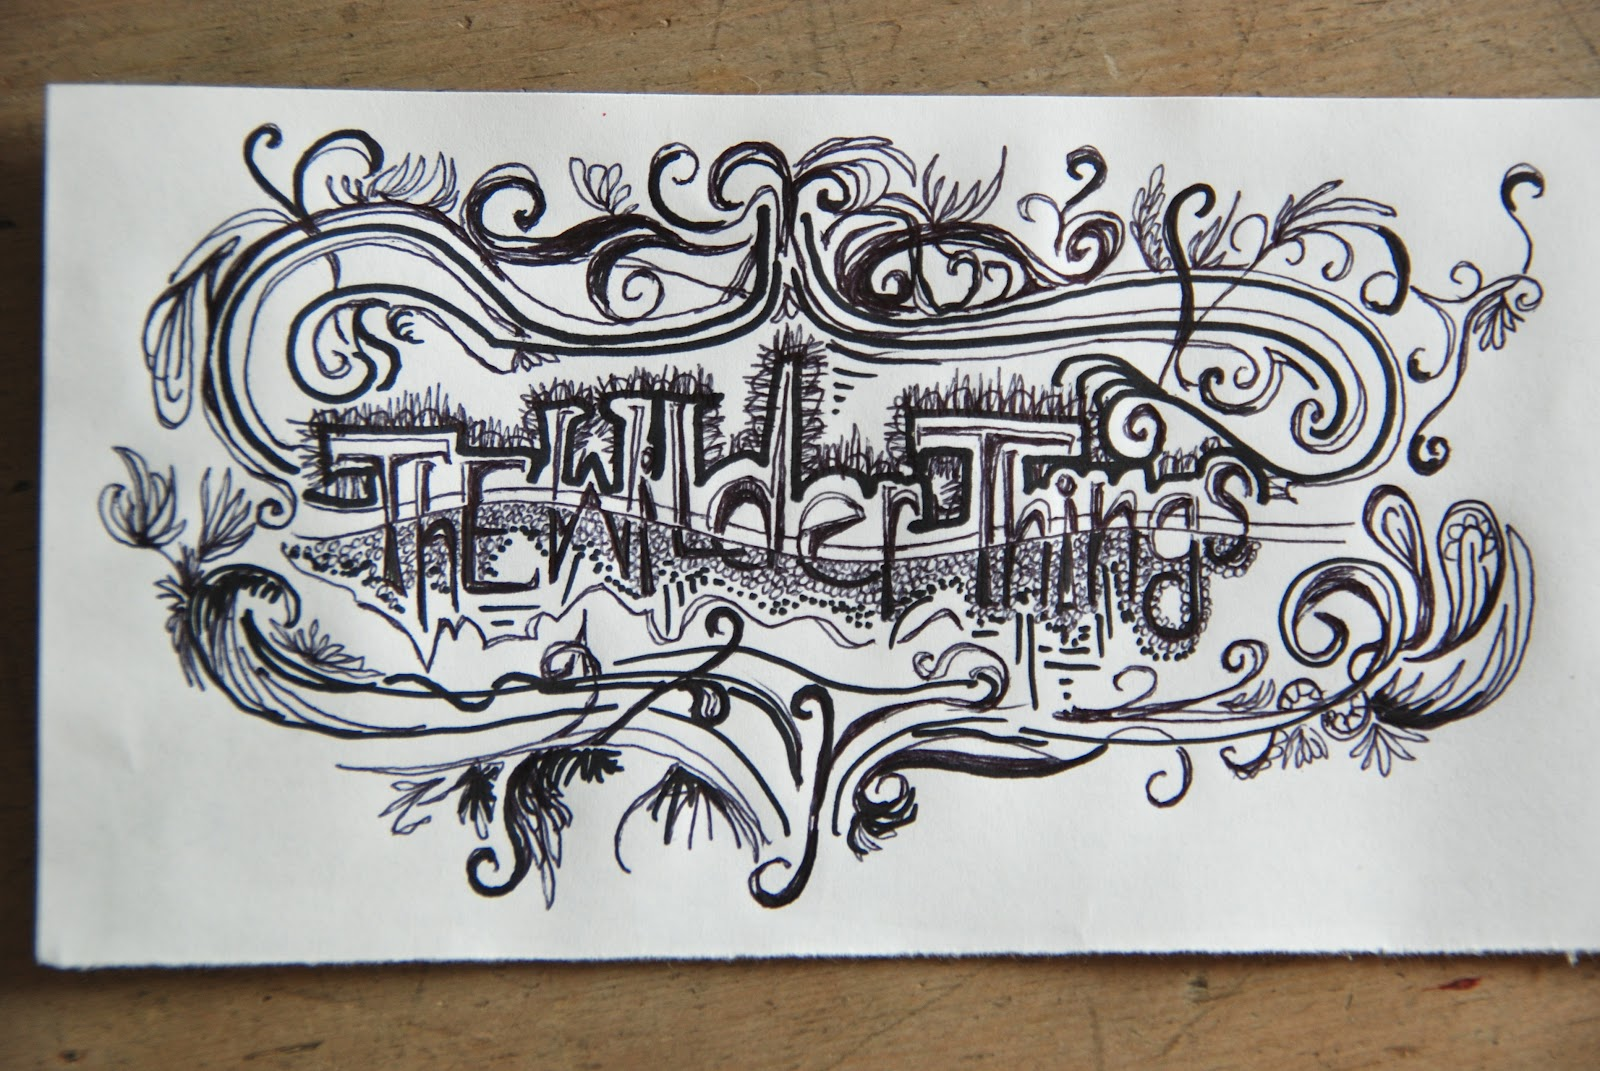 New Stylish Graffiti Drawings Of